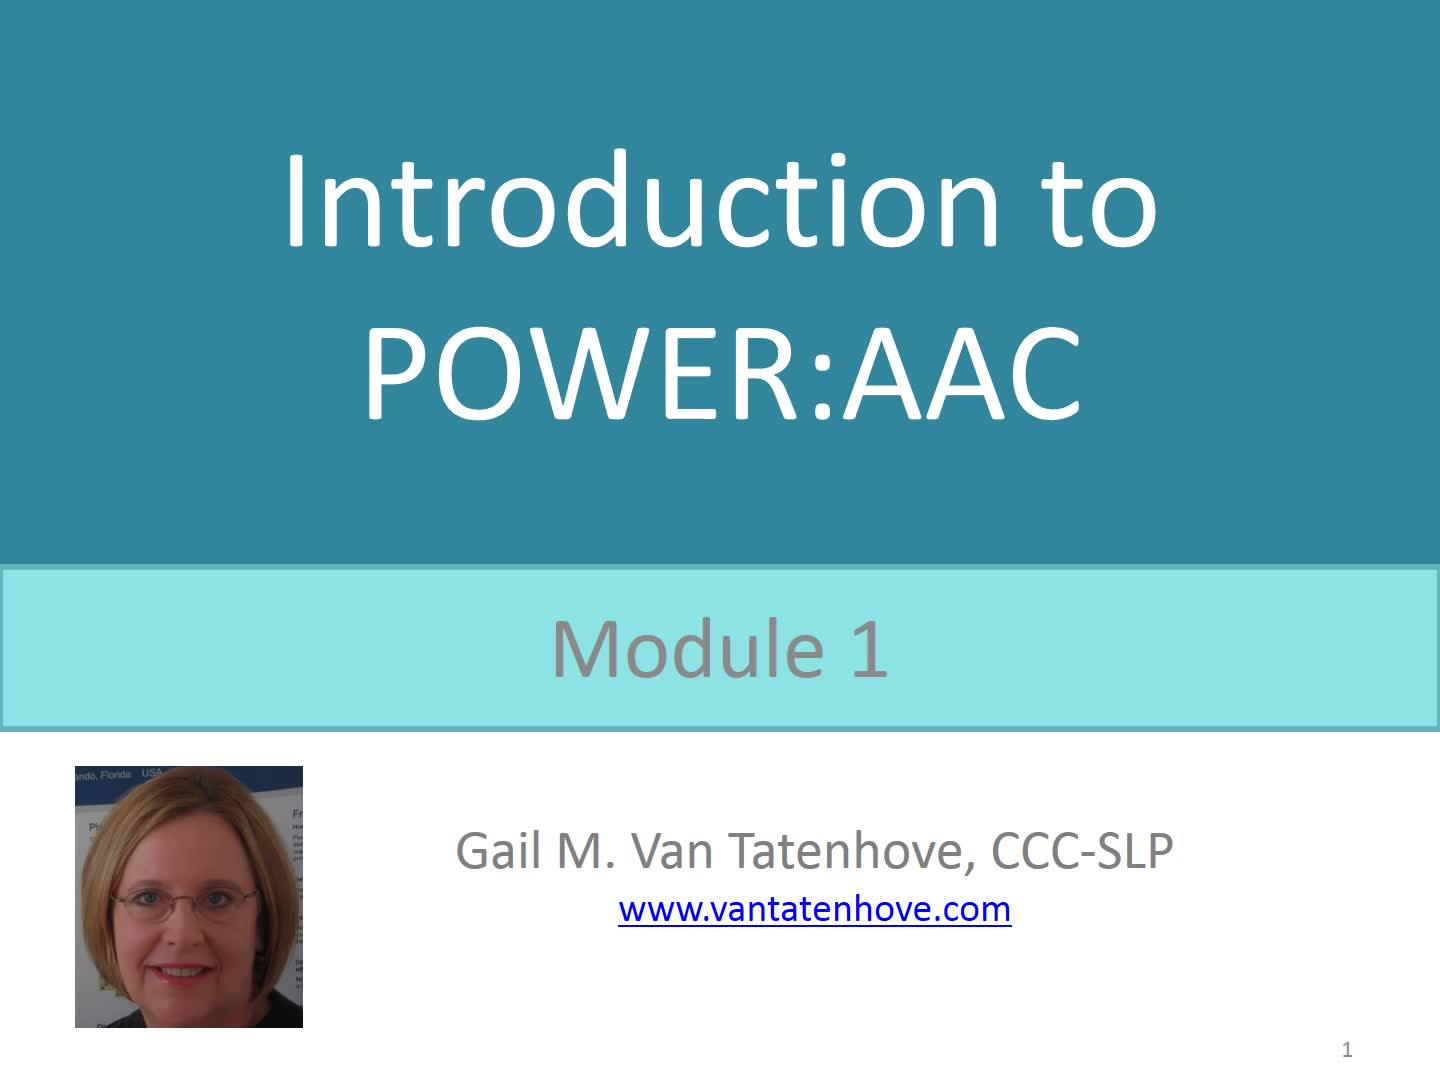 PowerAAC Module 1: Welcome to POWERAAC